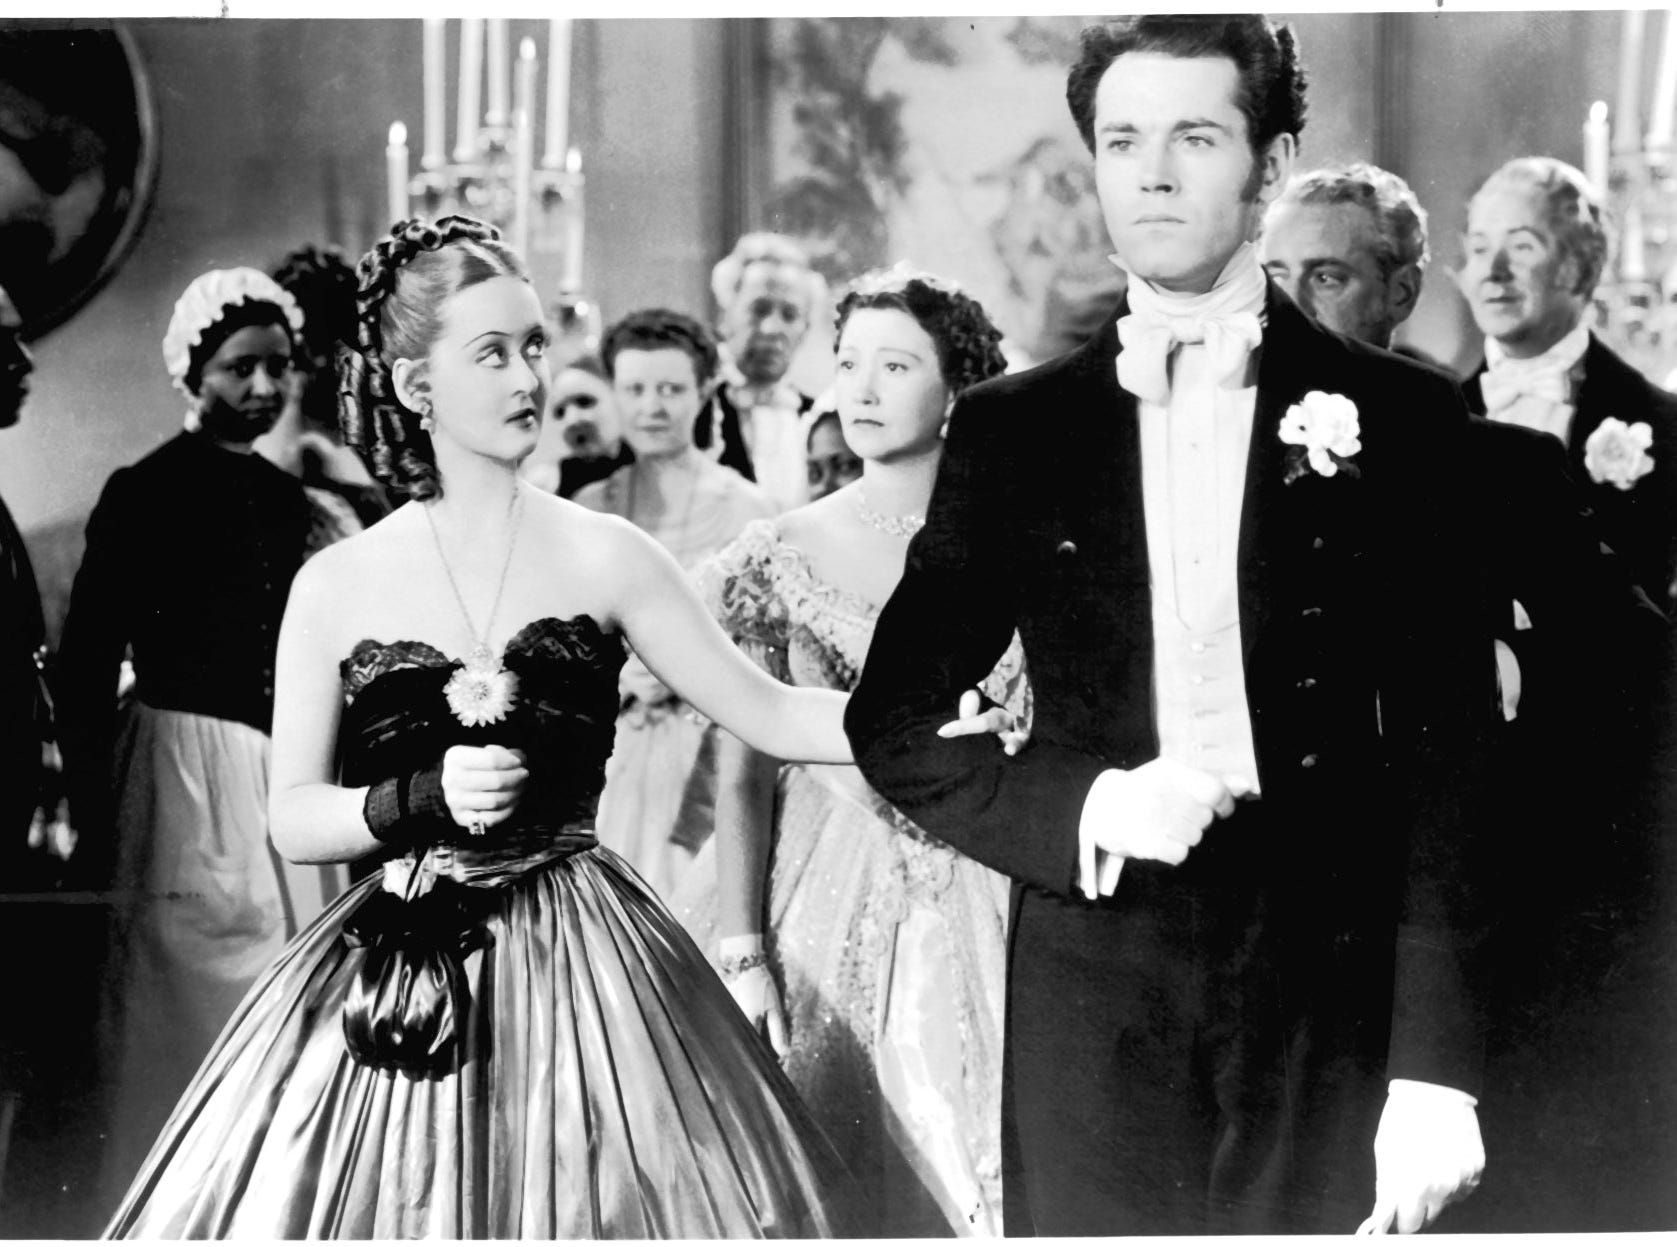 Bette Davis and Henry Fonda in a scene from the motion picture Jezebel.